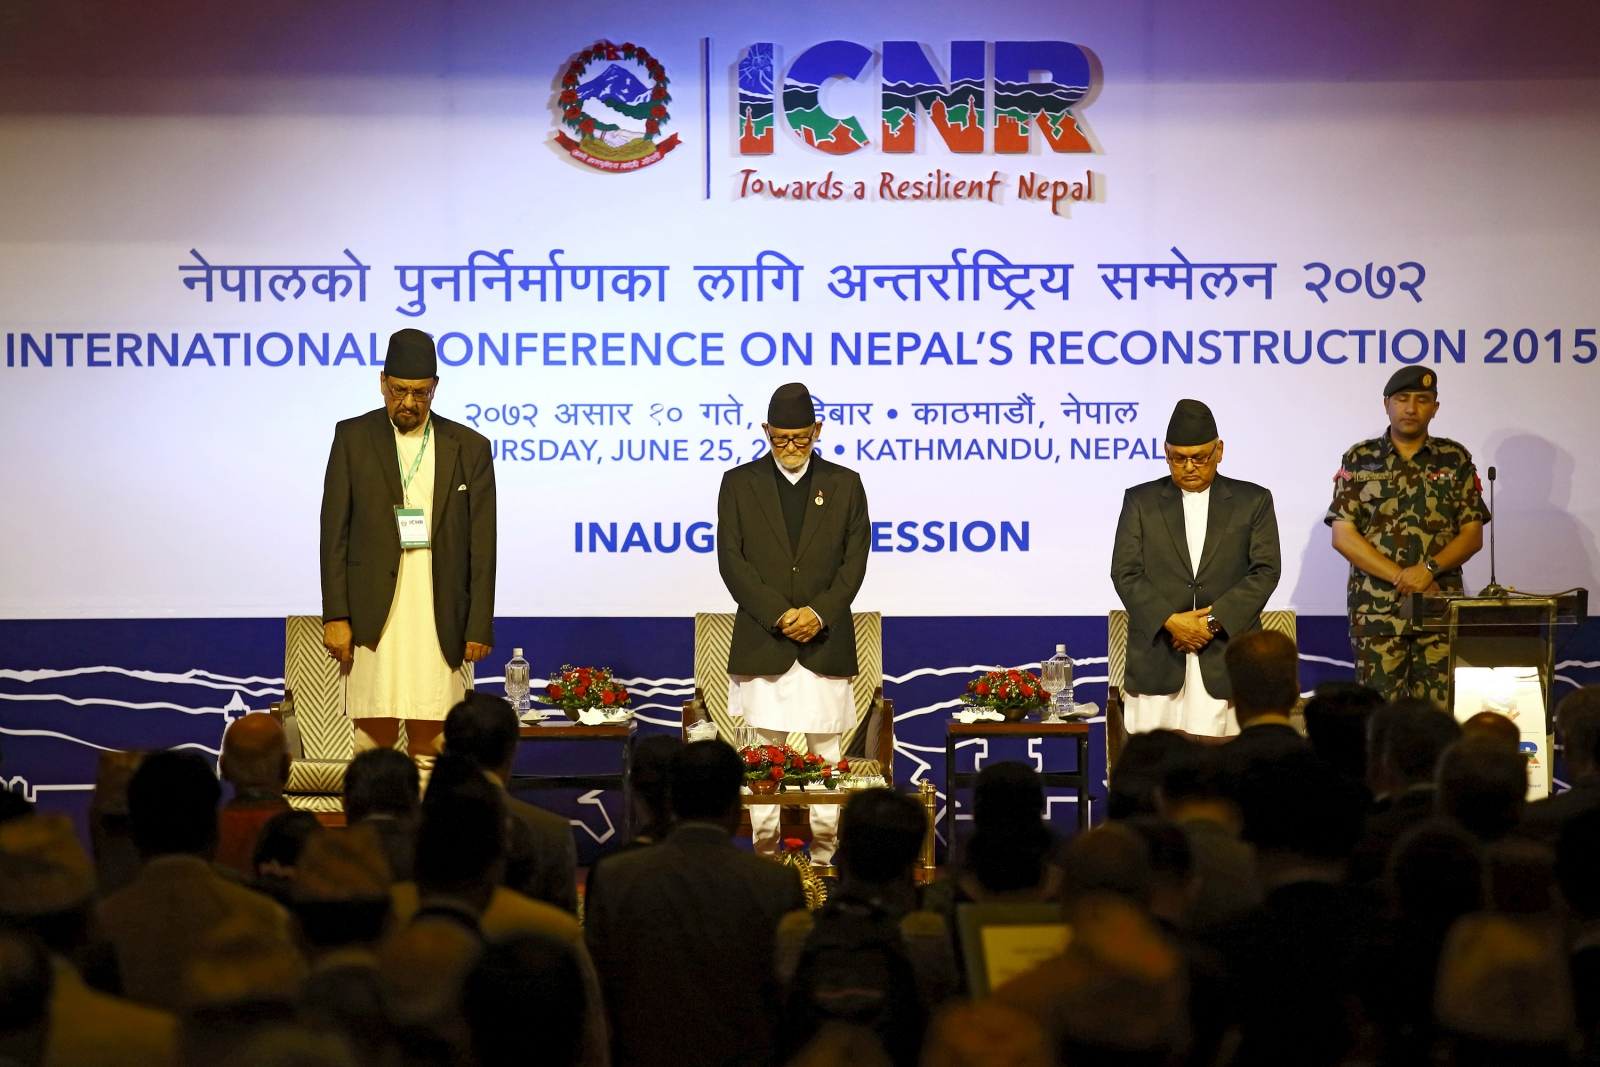 International Conference of Nepal Reconstruction